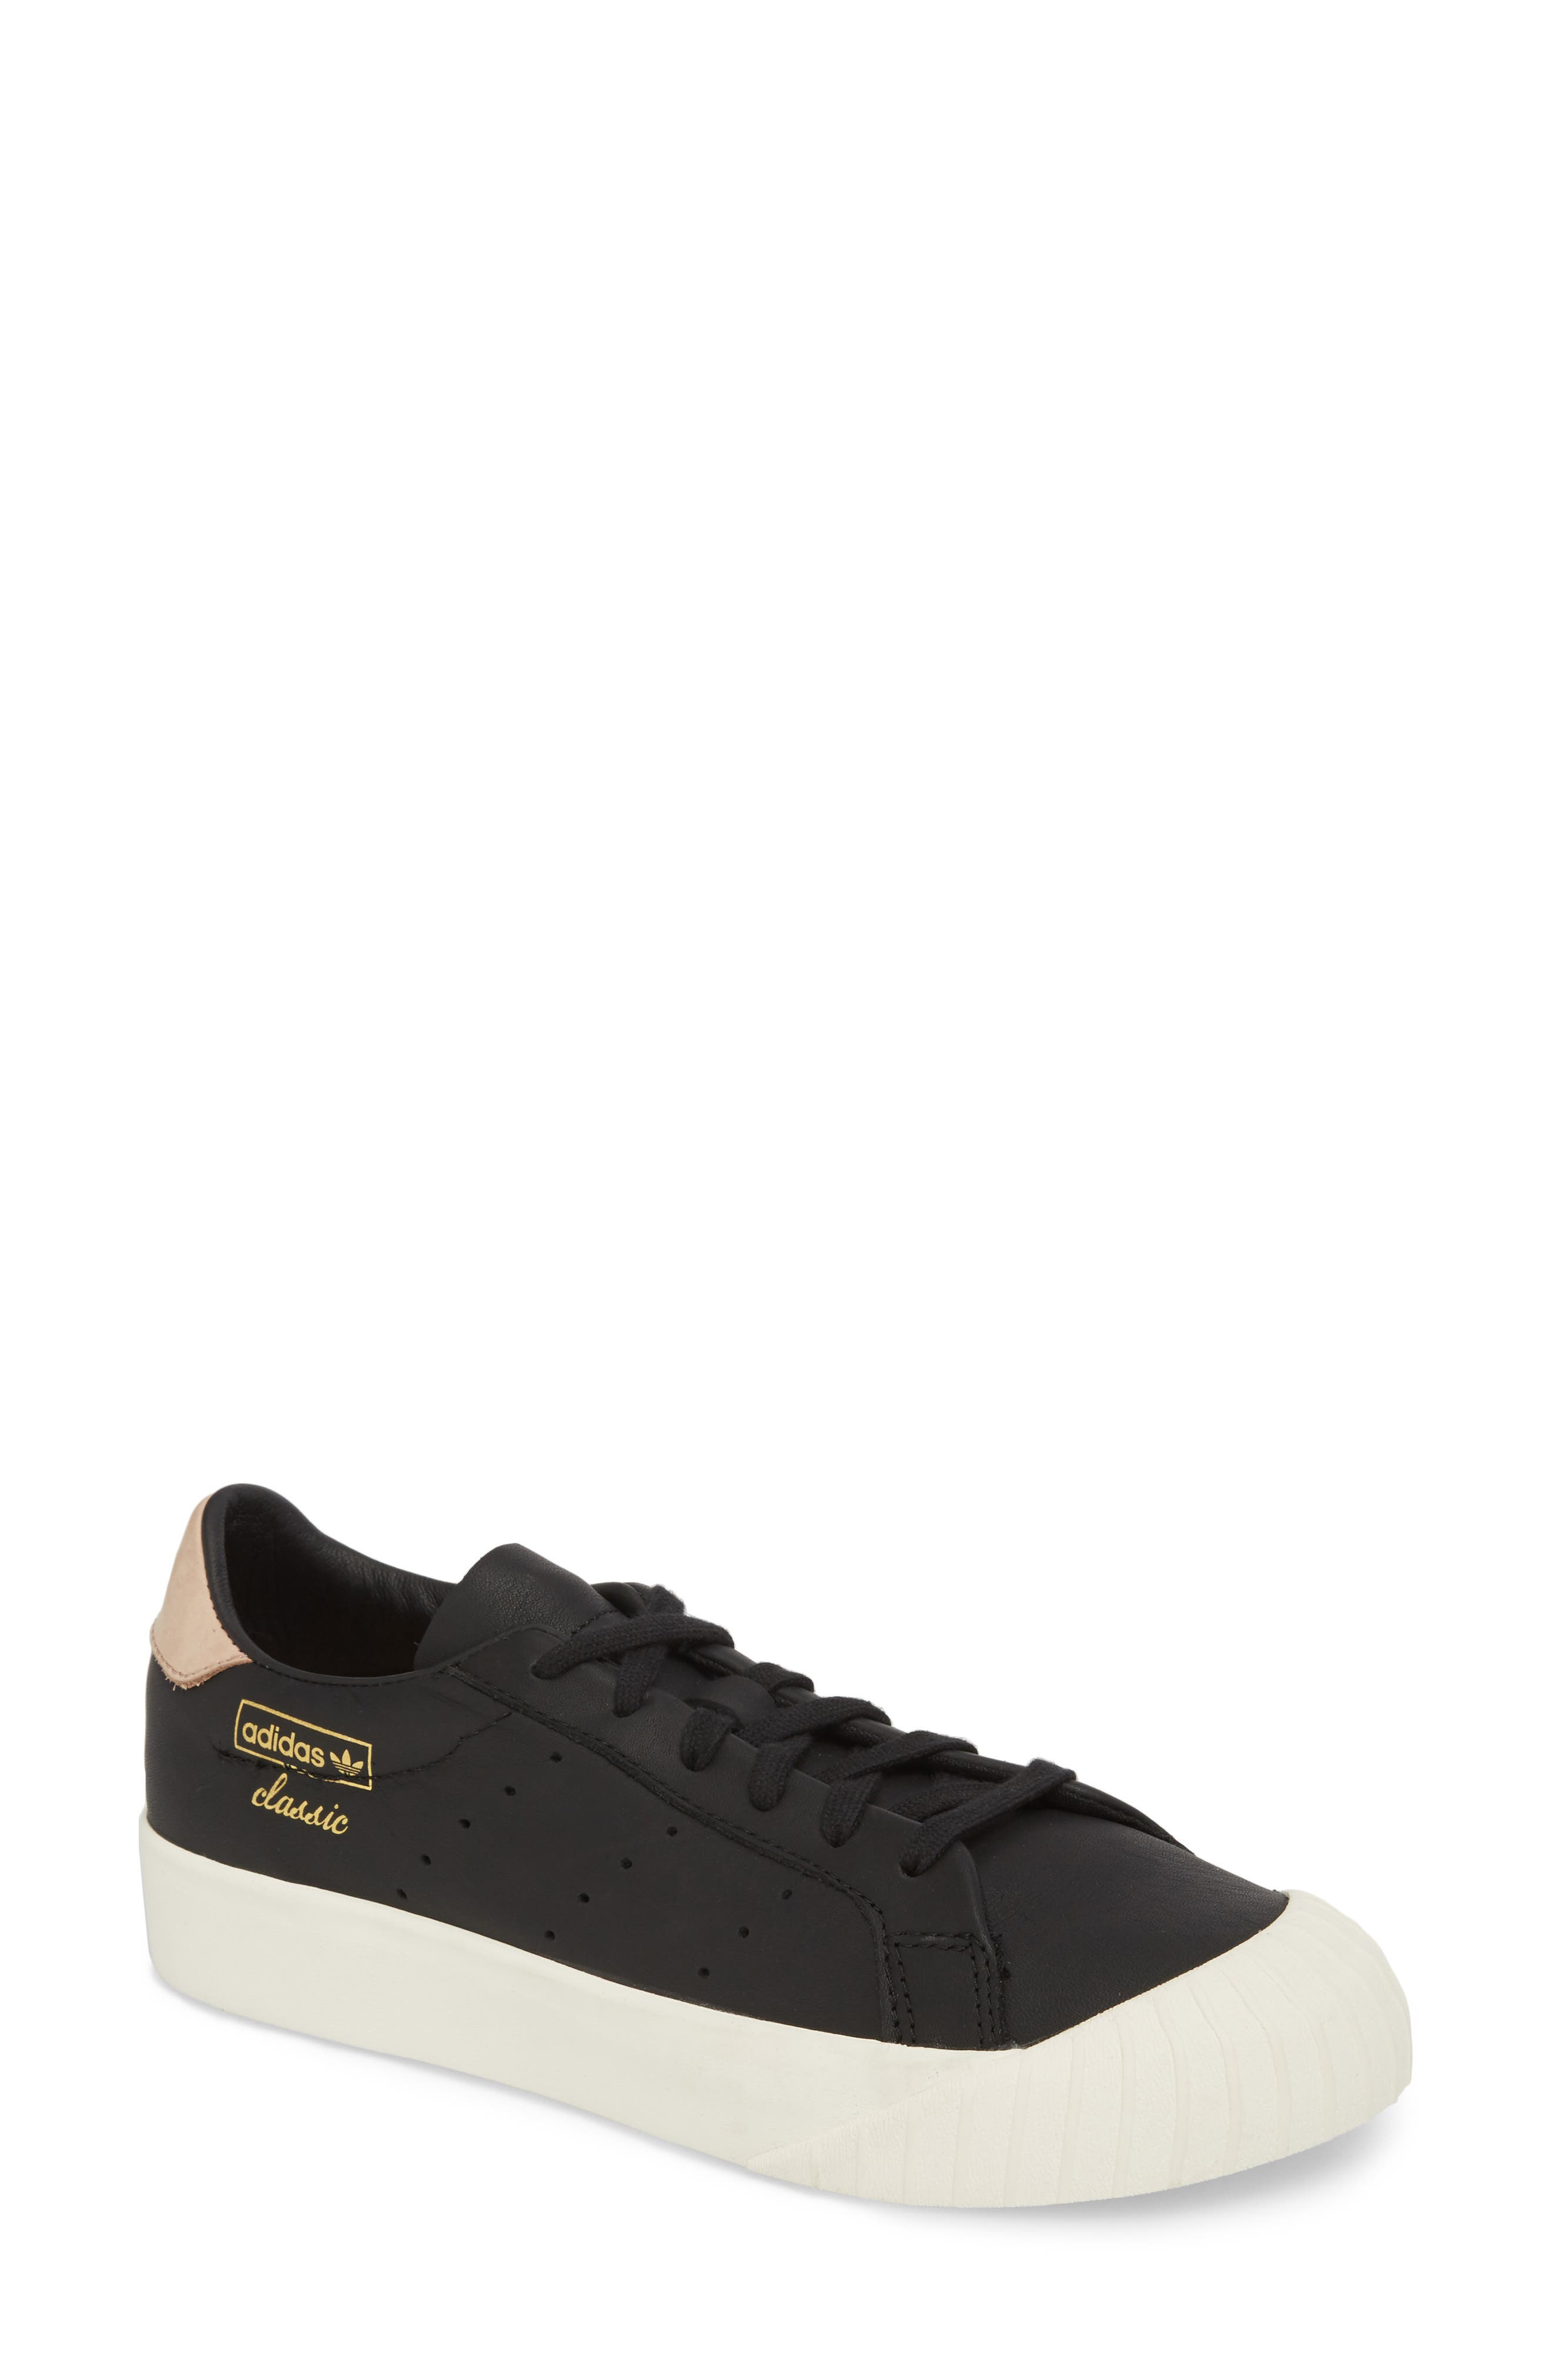 Everyn Perforated Low Top Sneaker,                             Main thumbnail 1, color,                             001